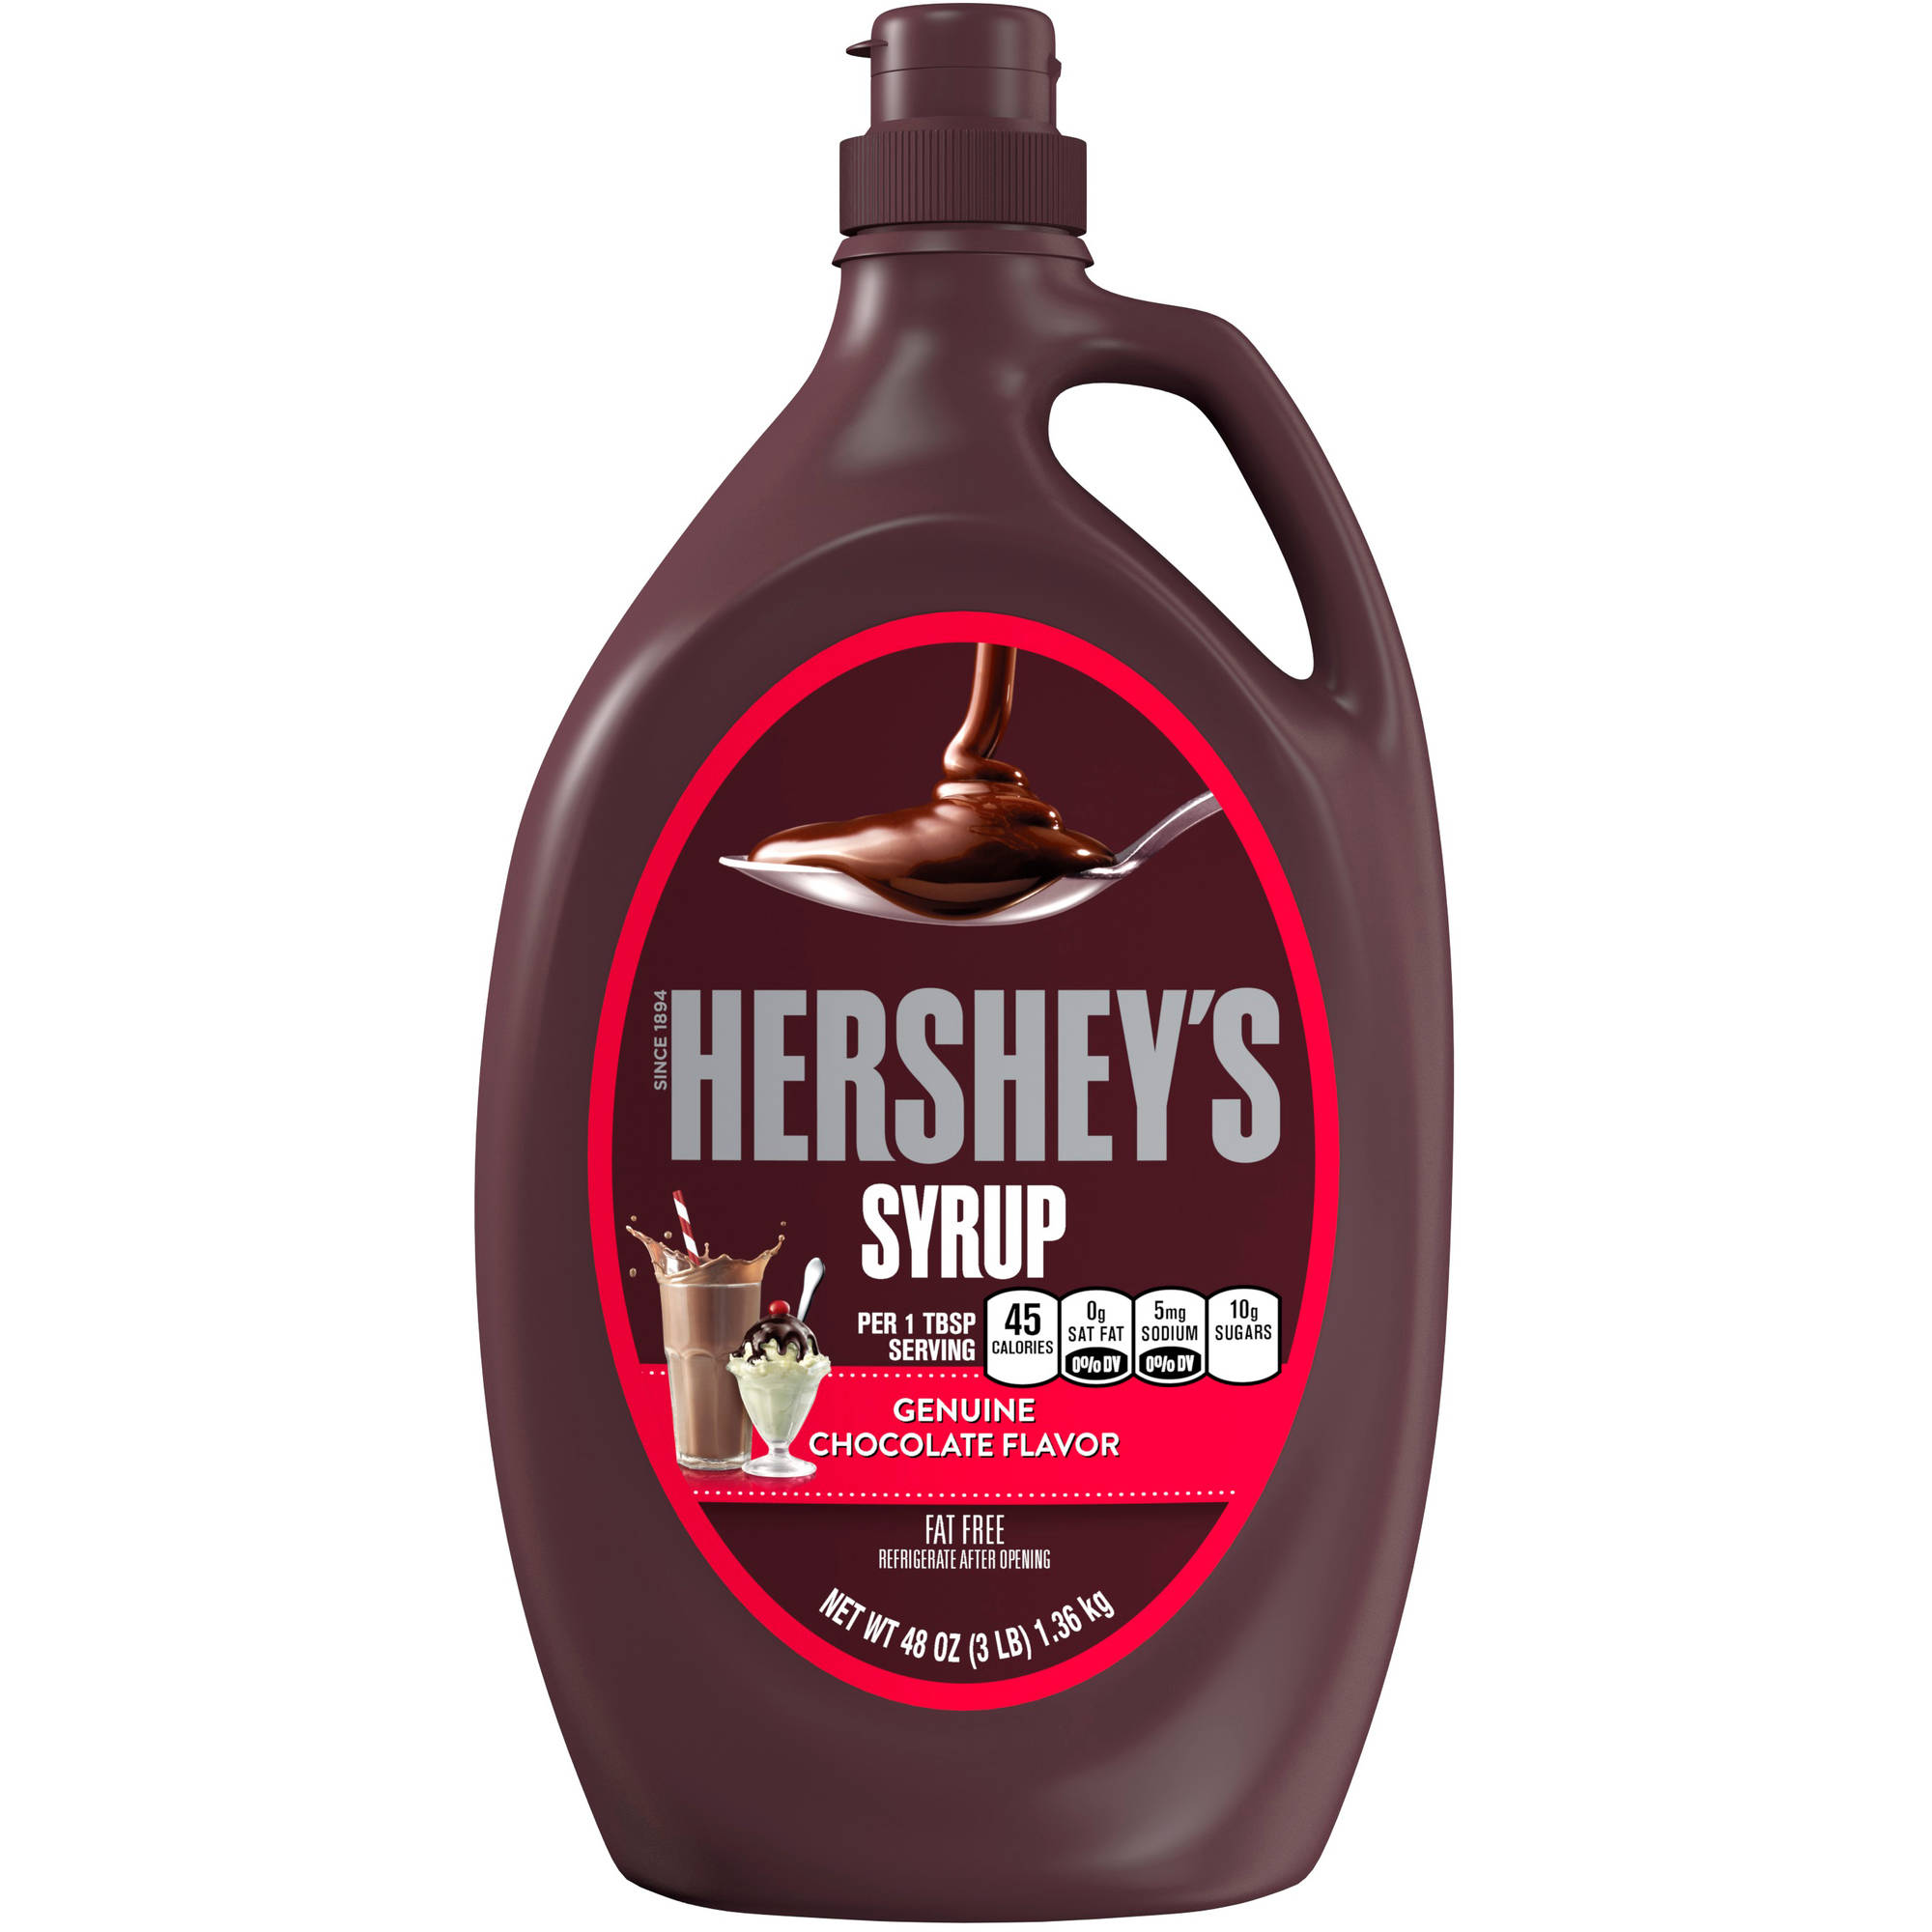 Hershey's Genuine Chocolate Flavor Syrup, 48 oz